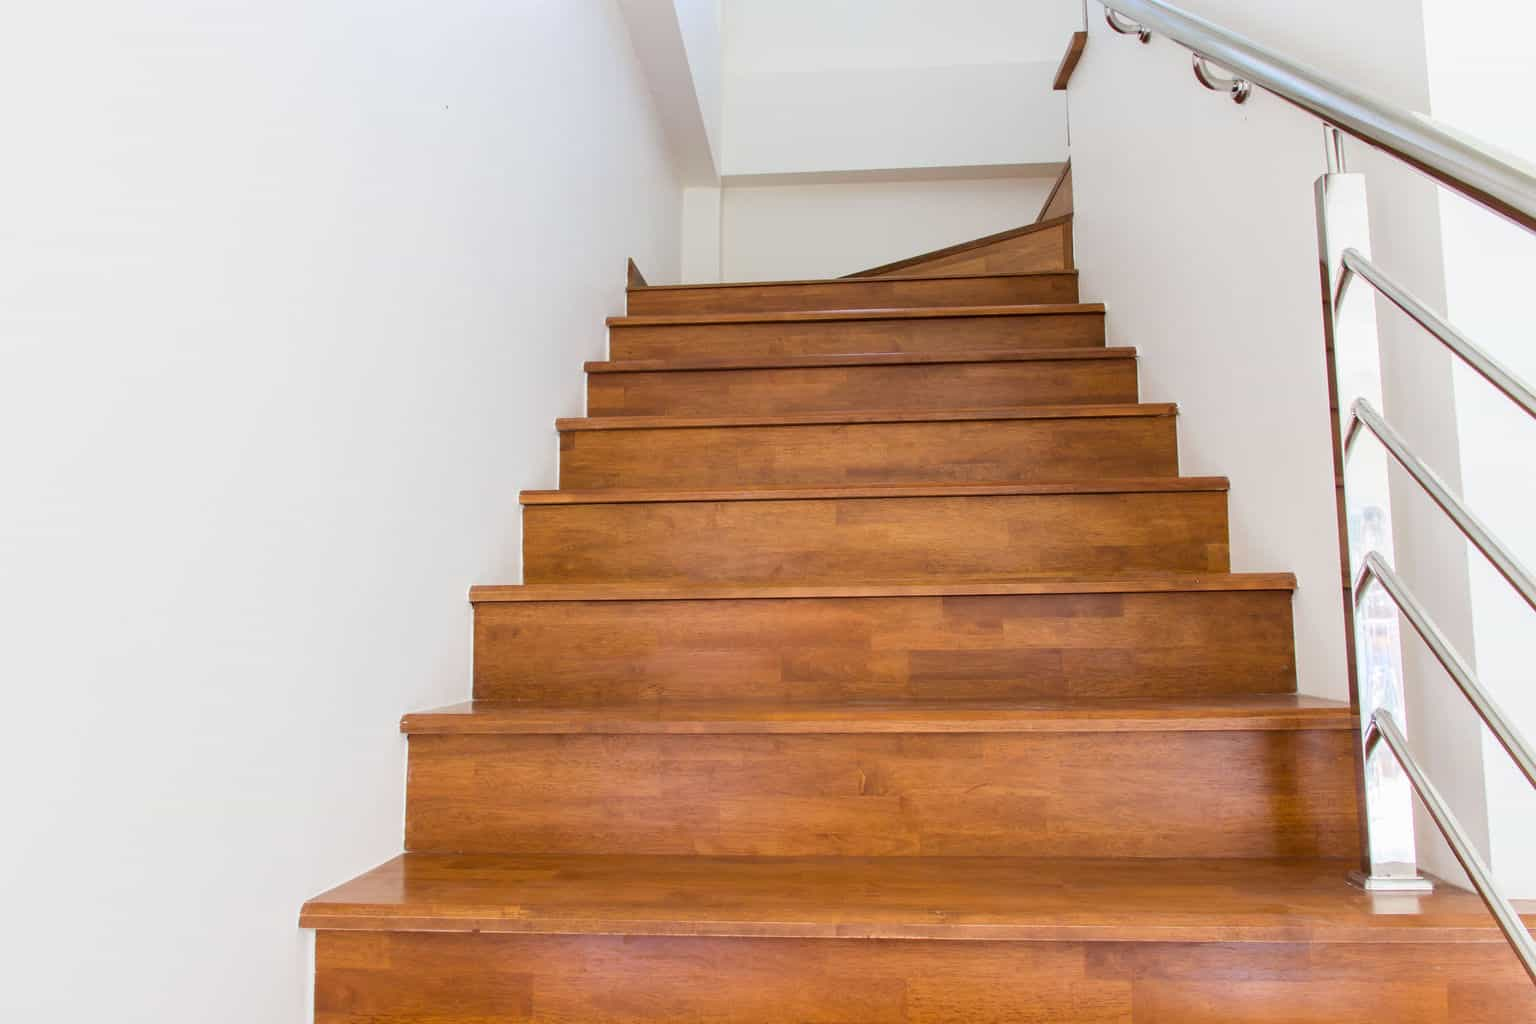 ... They Have Besides Carpet; Laminate Flooring On Stairs Tends To Be  Popular And One Of The Best Choices Available Once Weu0027ve Gone Over All Of  The Options.